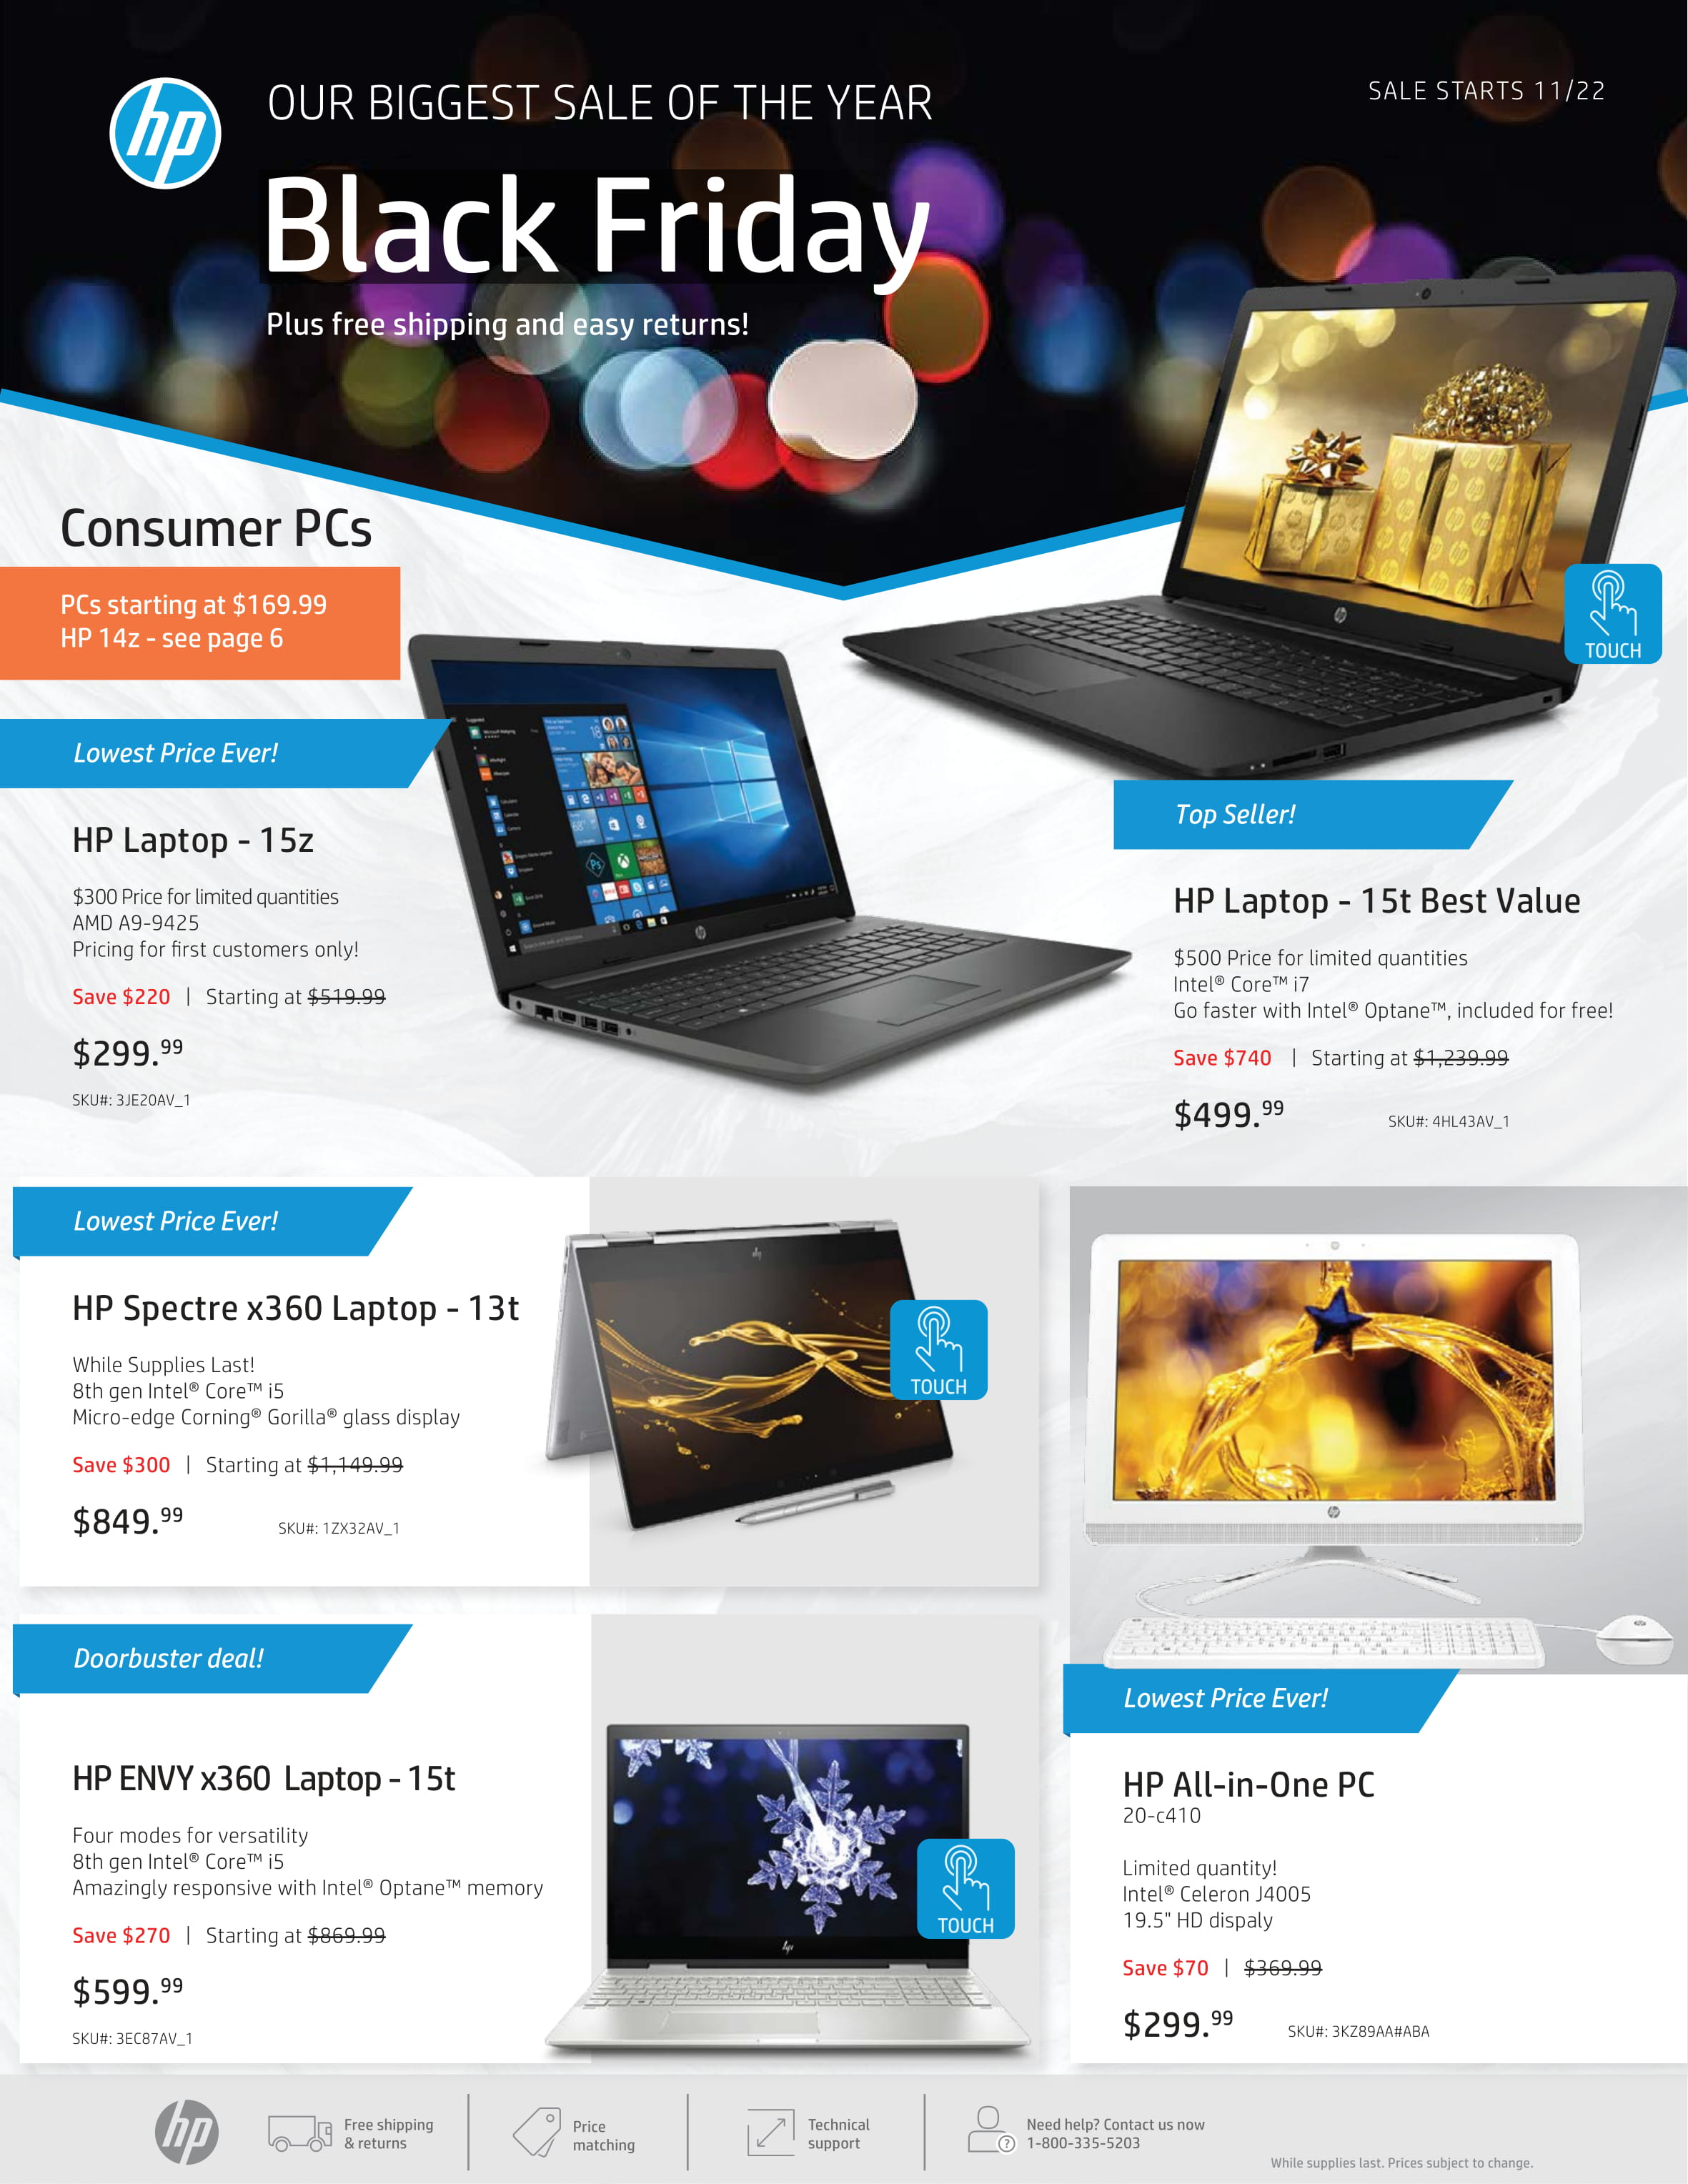 Hp S Massive Black Friday Sale Is Now Live Insane Deals With Up To 60 Off